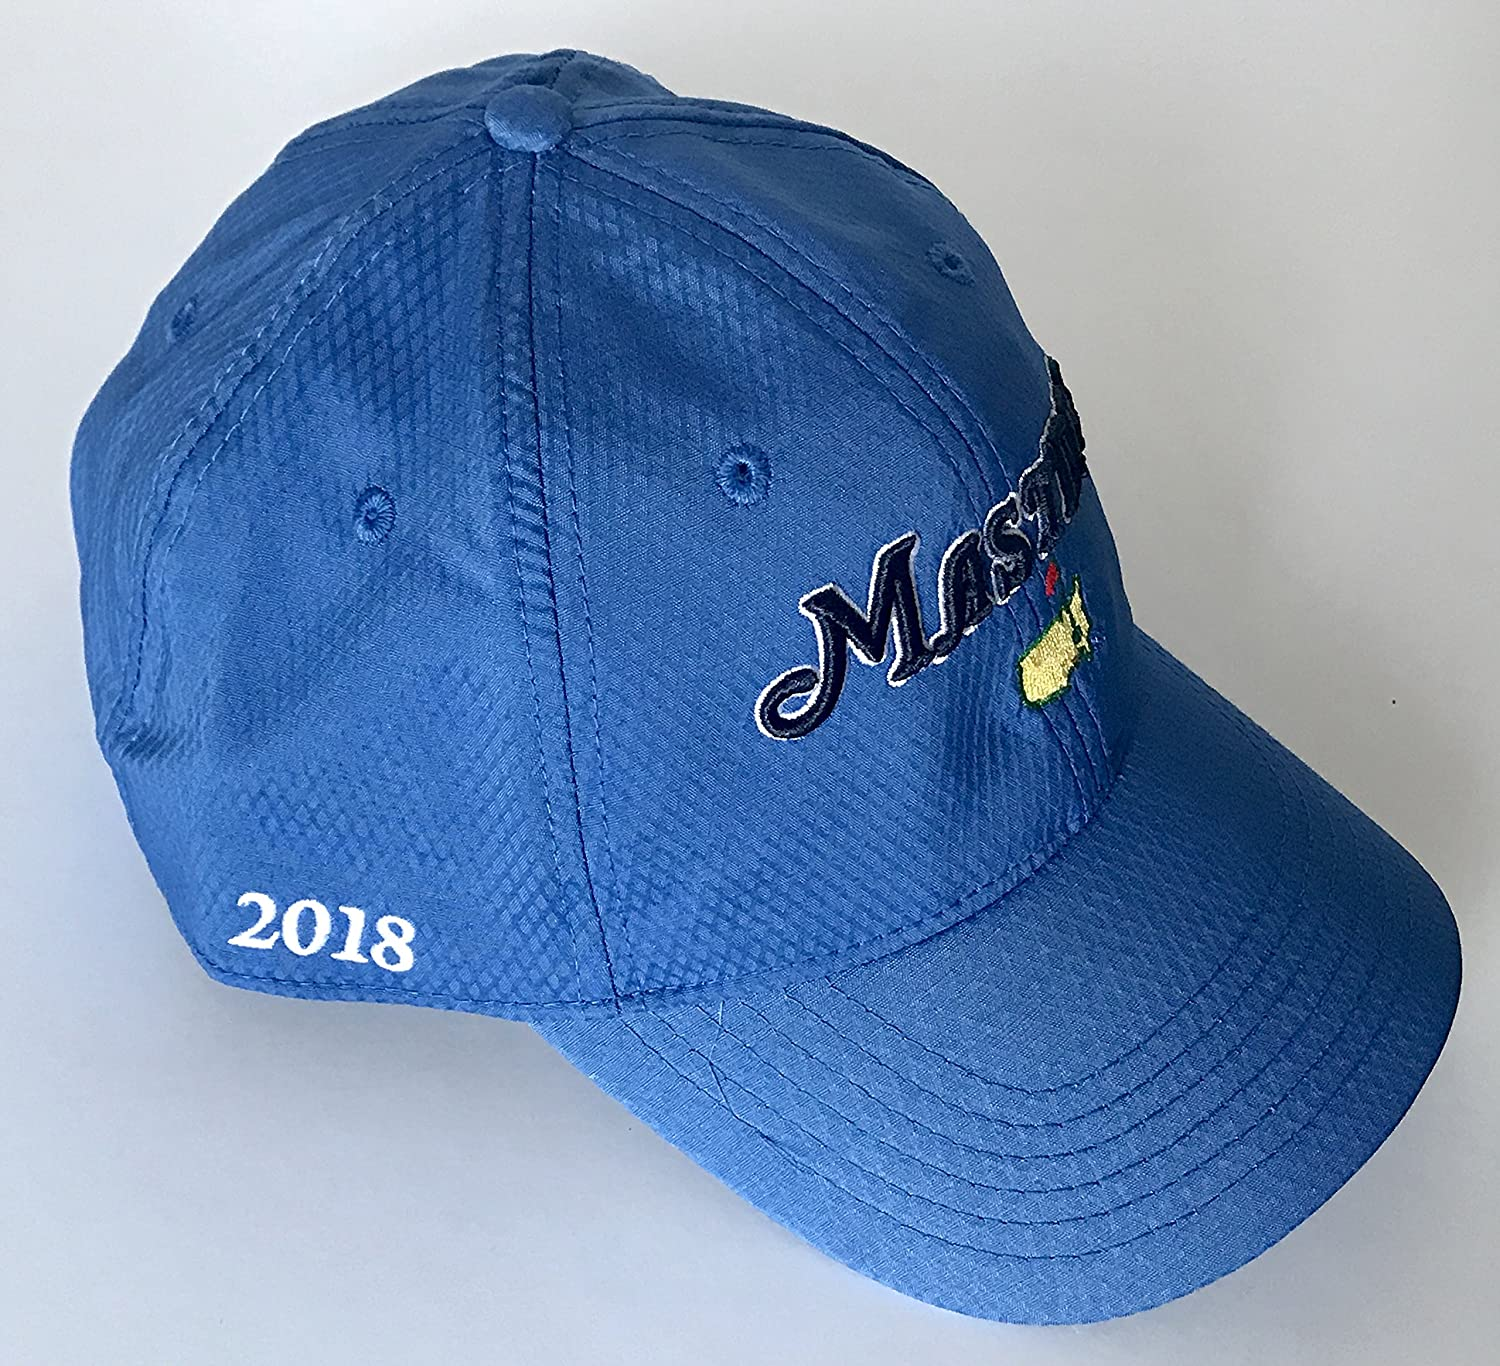 e715cb0903f 2018 Masters golf Hat blue performance side dated Augusta National new pga  at Amazon s Sports Collectibles Store